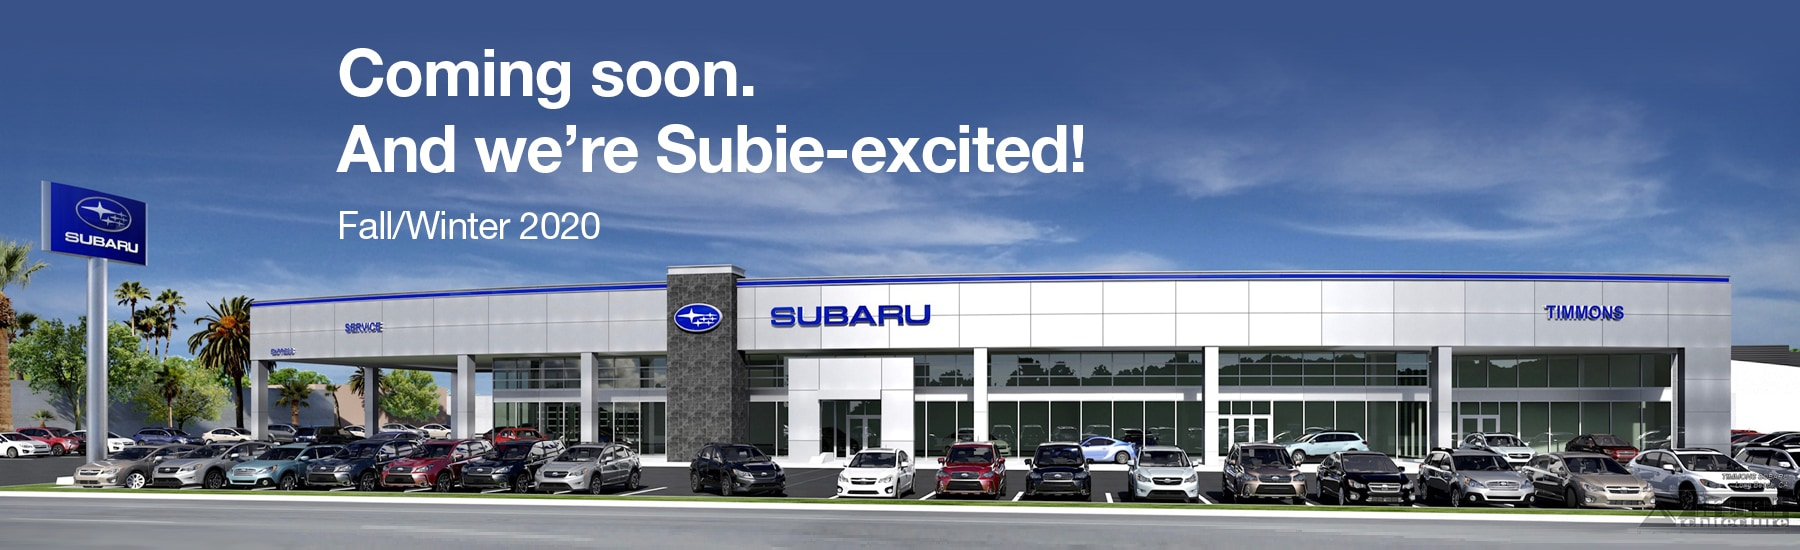 Timmons Subaru is building a new dealership